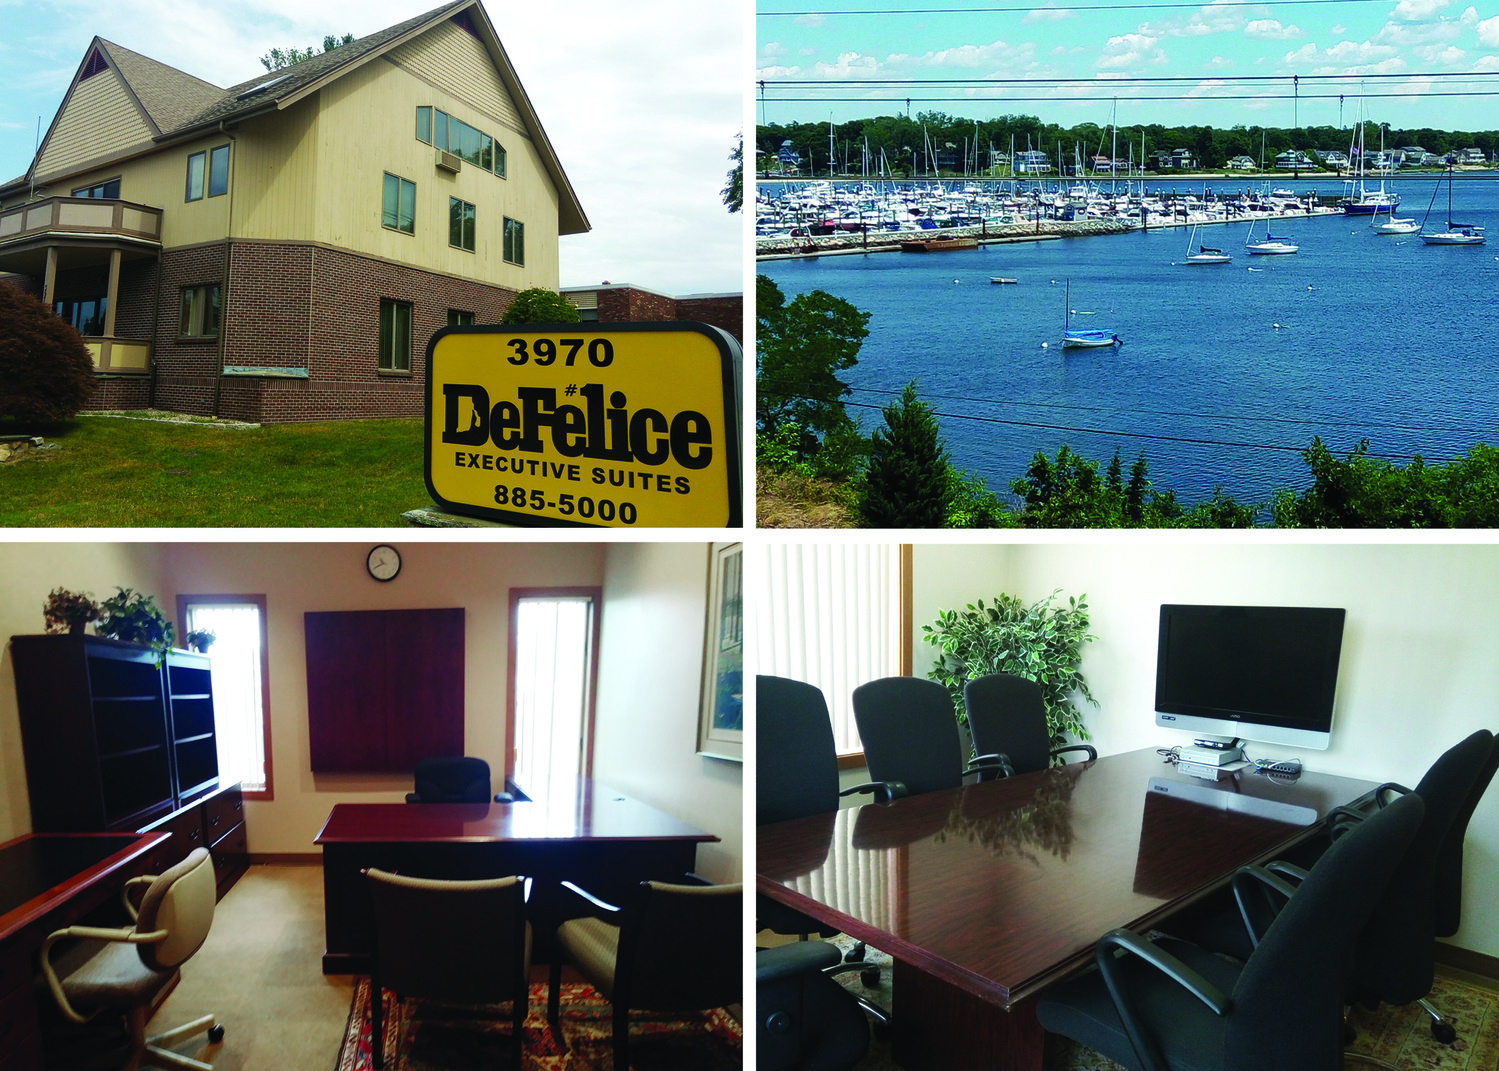 The DeFelice Center Executive Office Suites, conveniently located on Post Road in Warwick, are the perfect solution for the modern worker looking for individually-tailored office space ~ including this view of the sparkling waters of the bay.